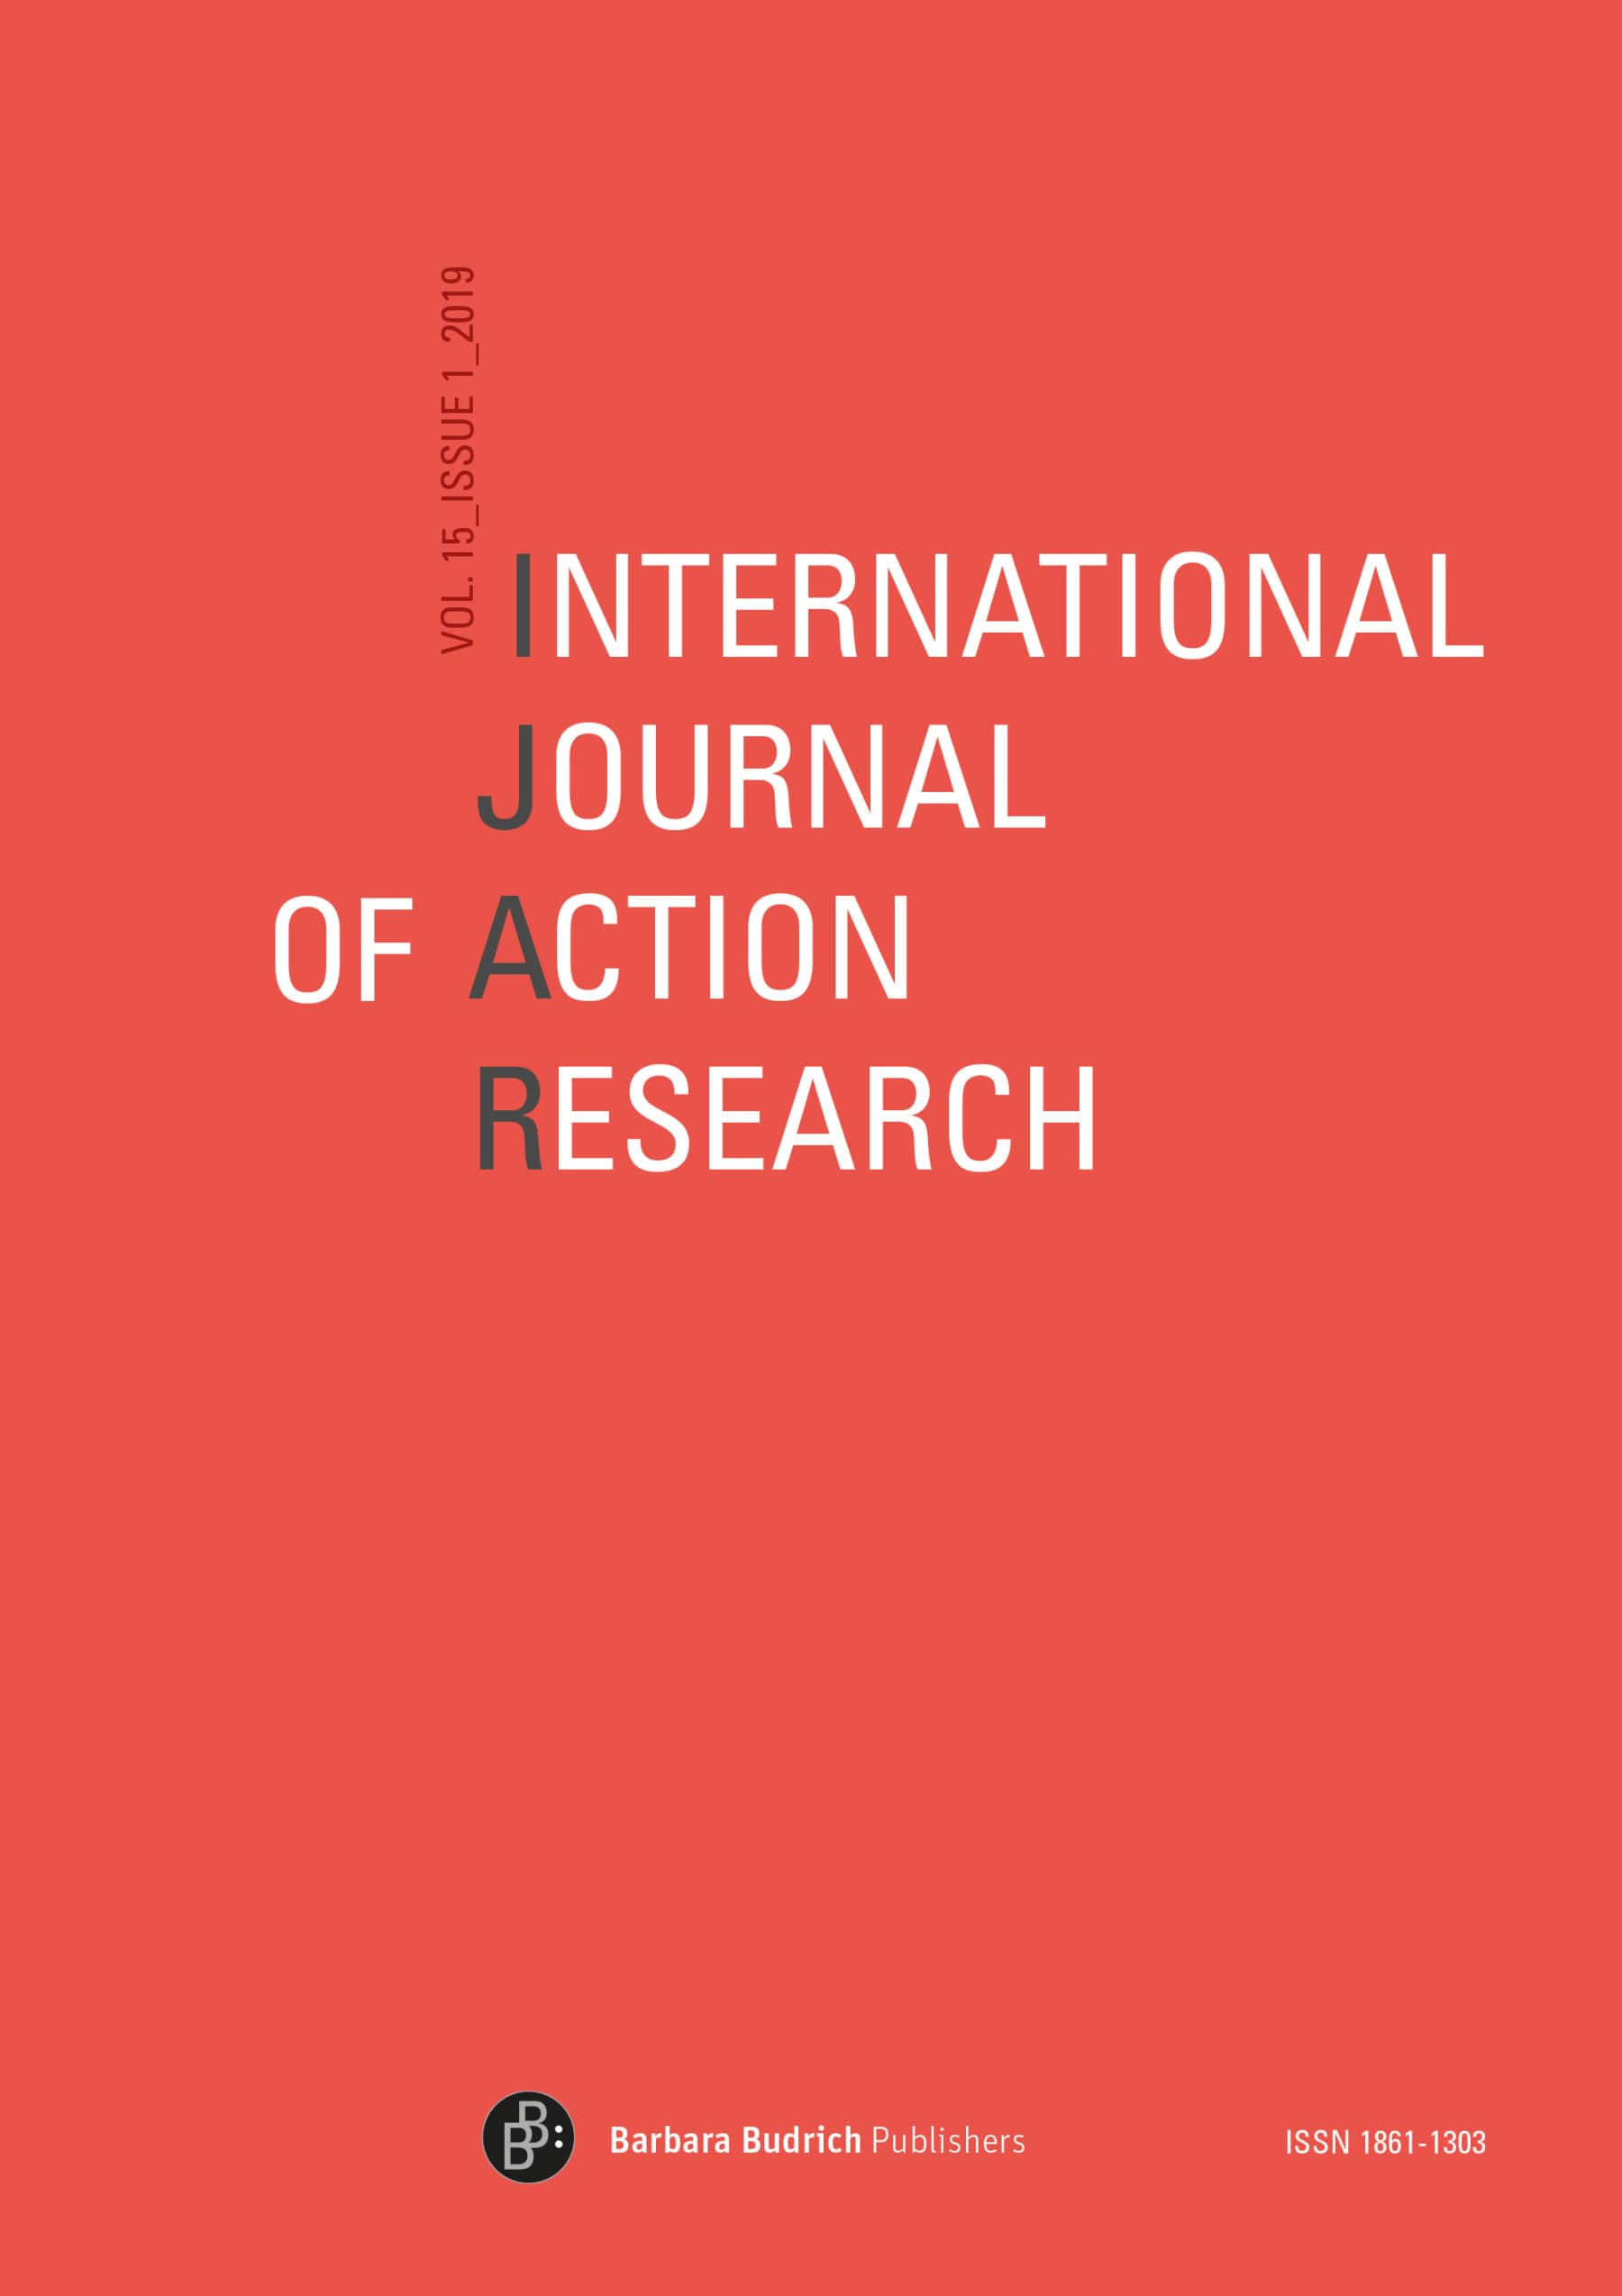 IJAR – International Journal of Action Research 1-2019